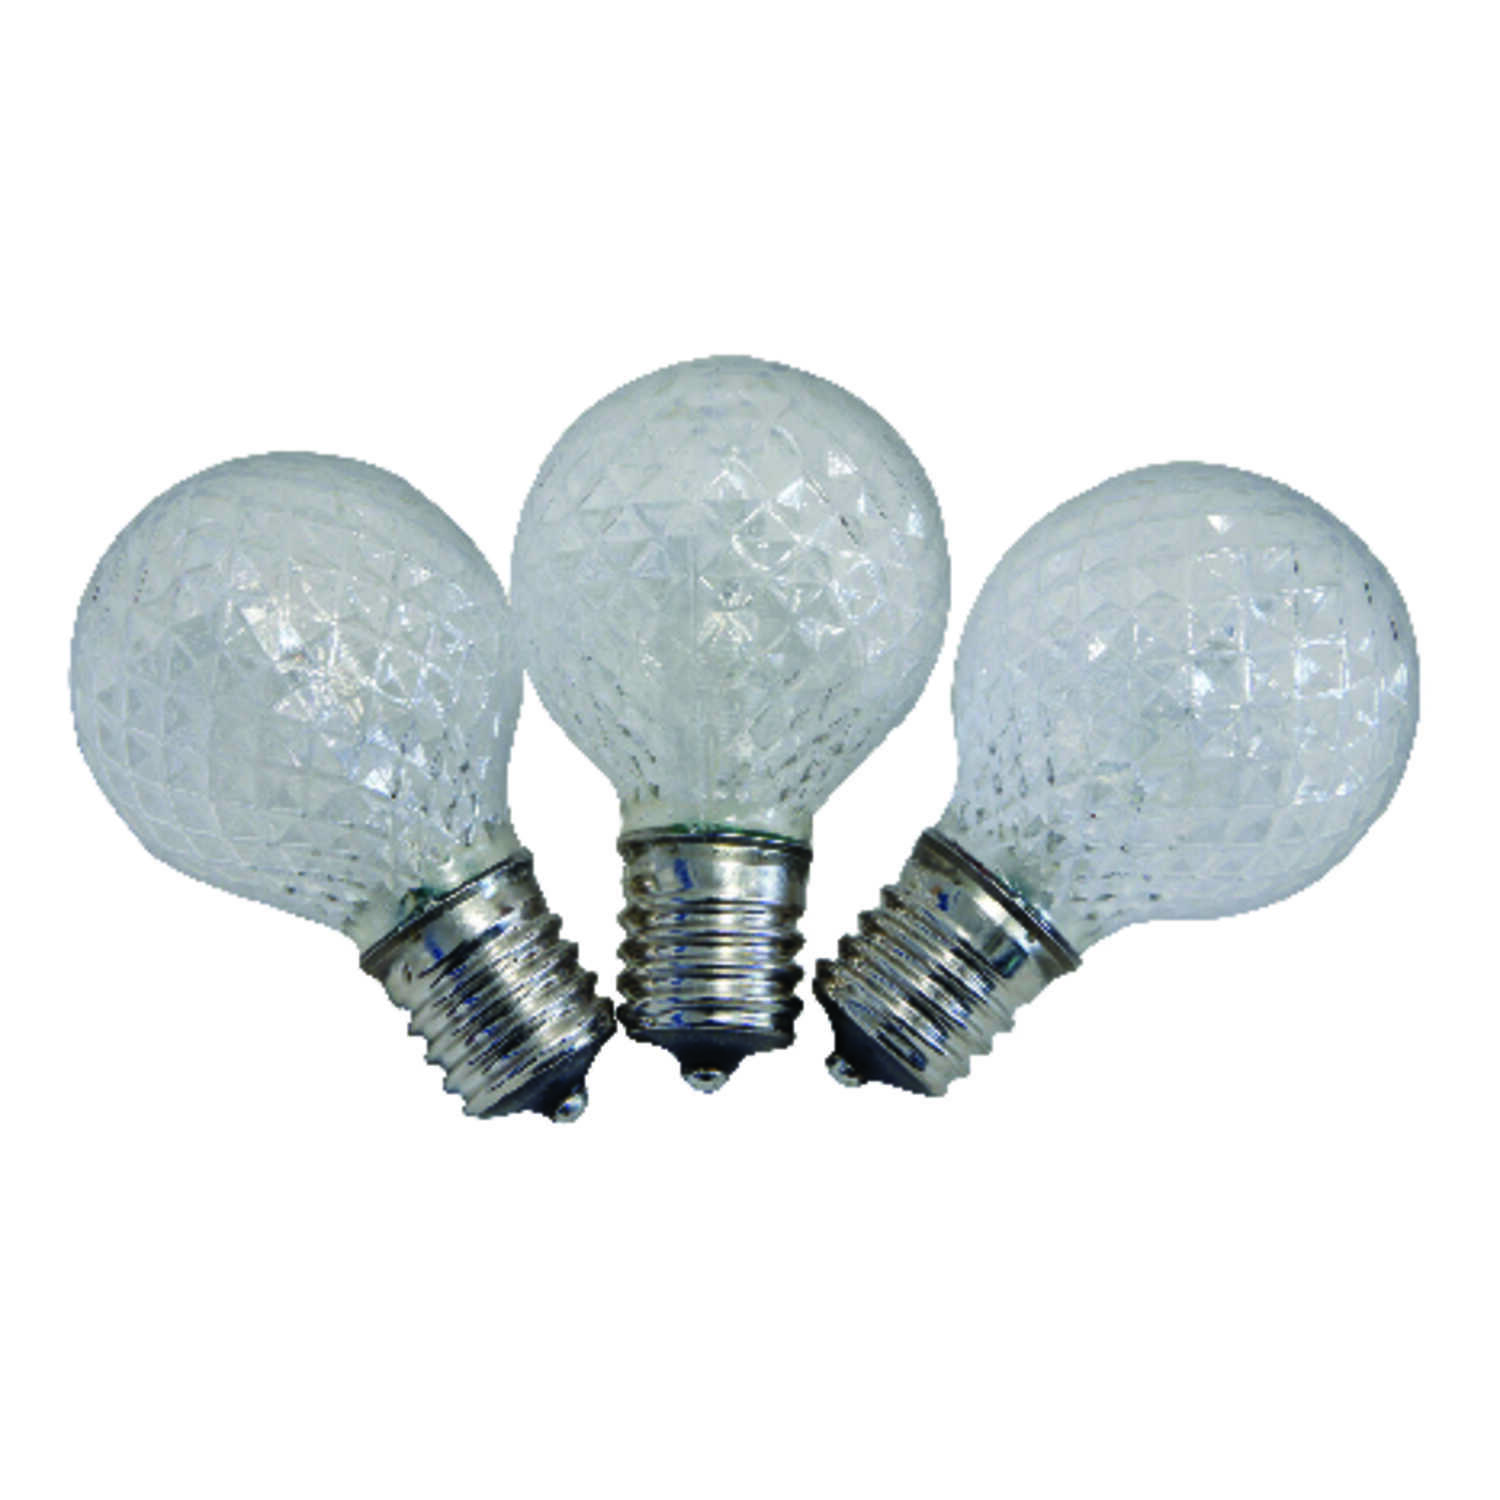 Celebrations  G40  LED  Replacement Bulb  Cool White  25 pk